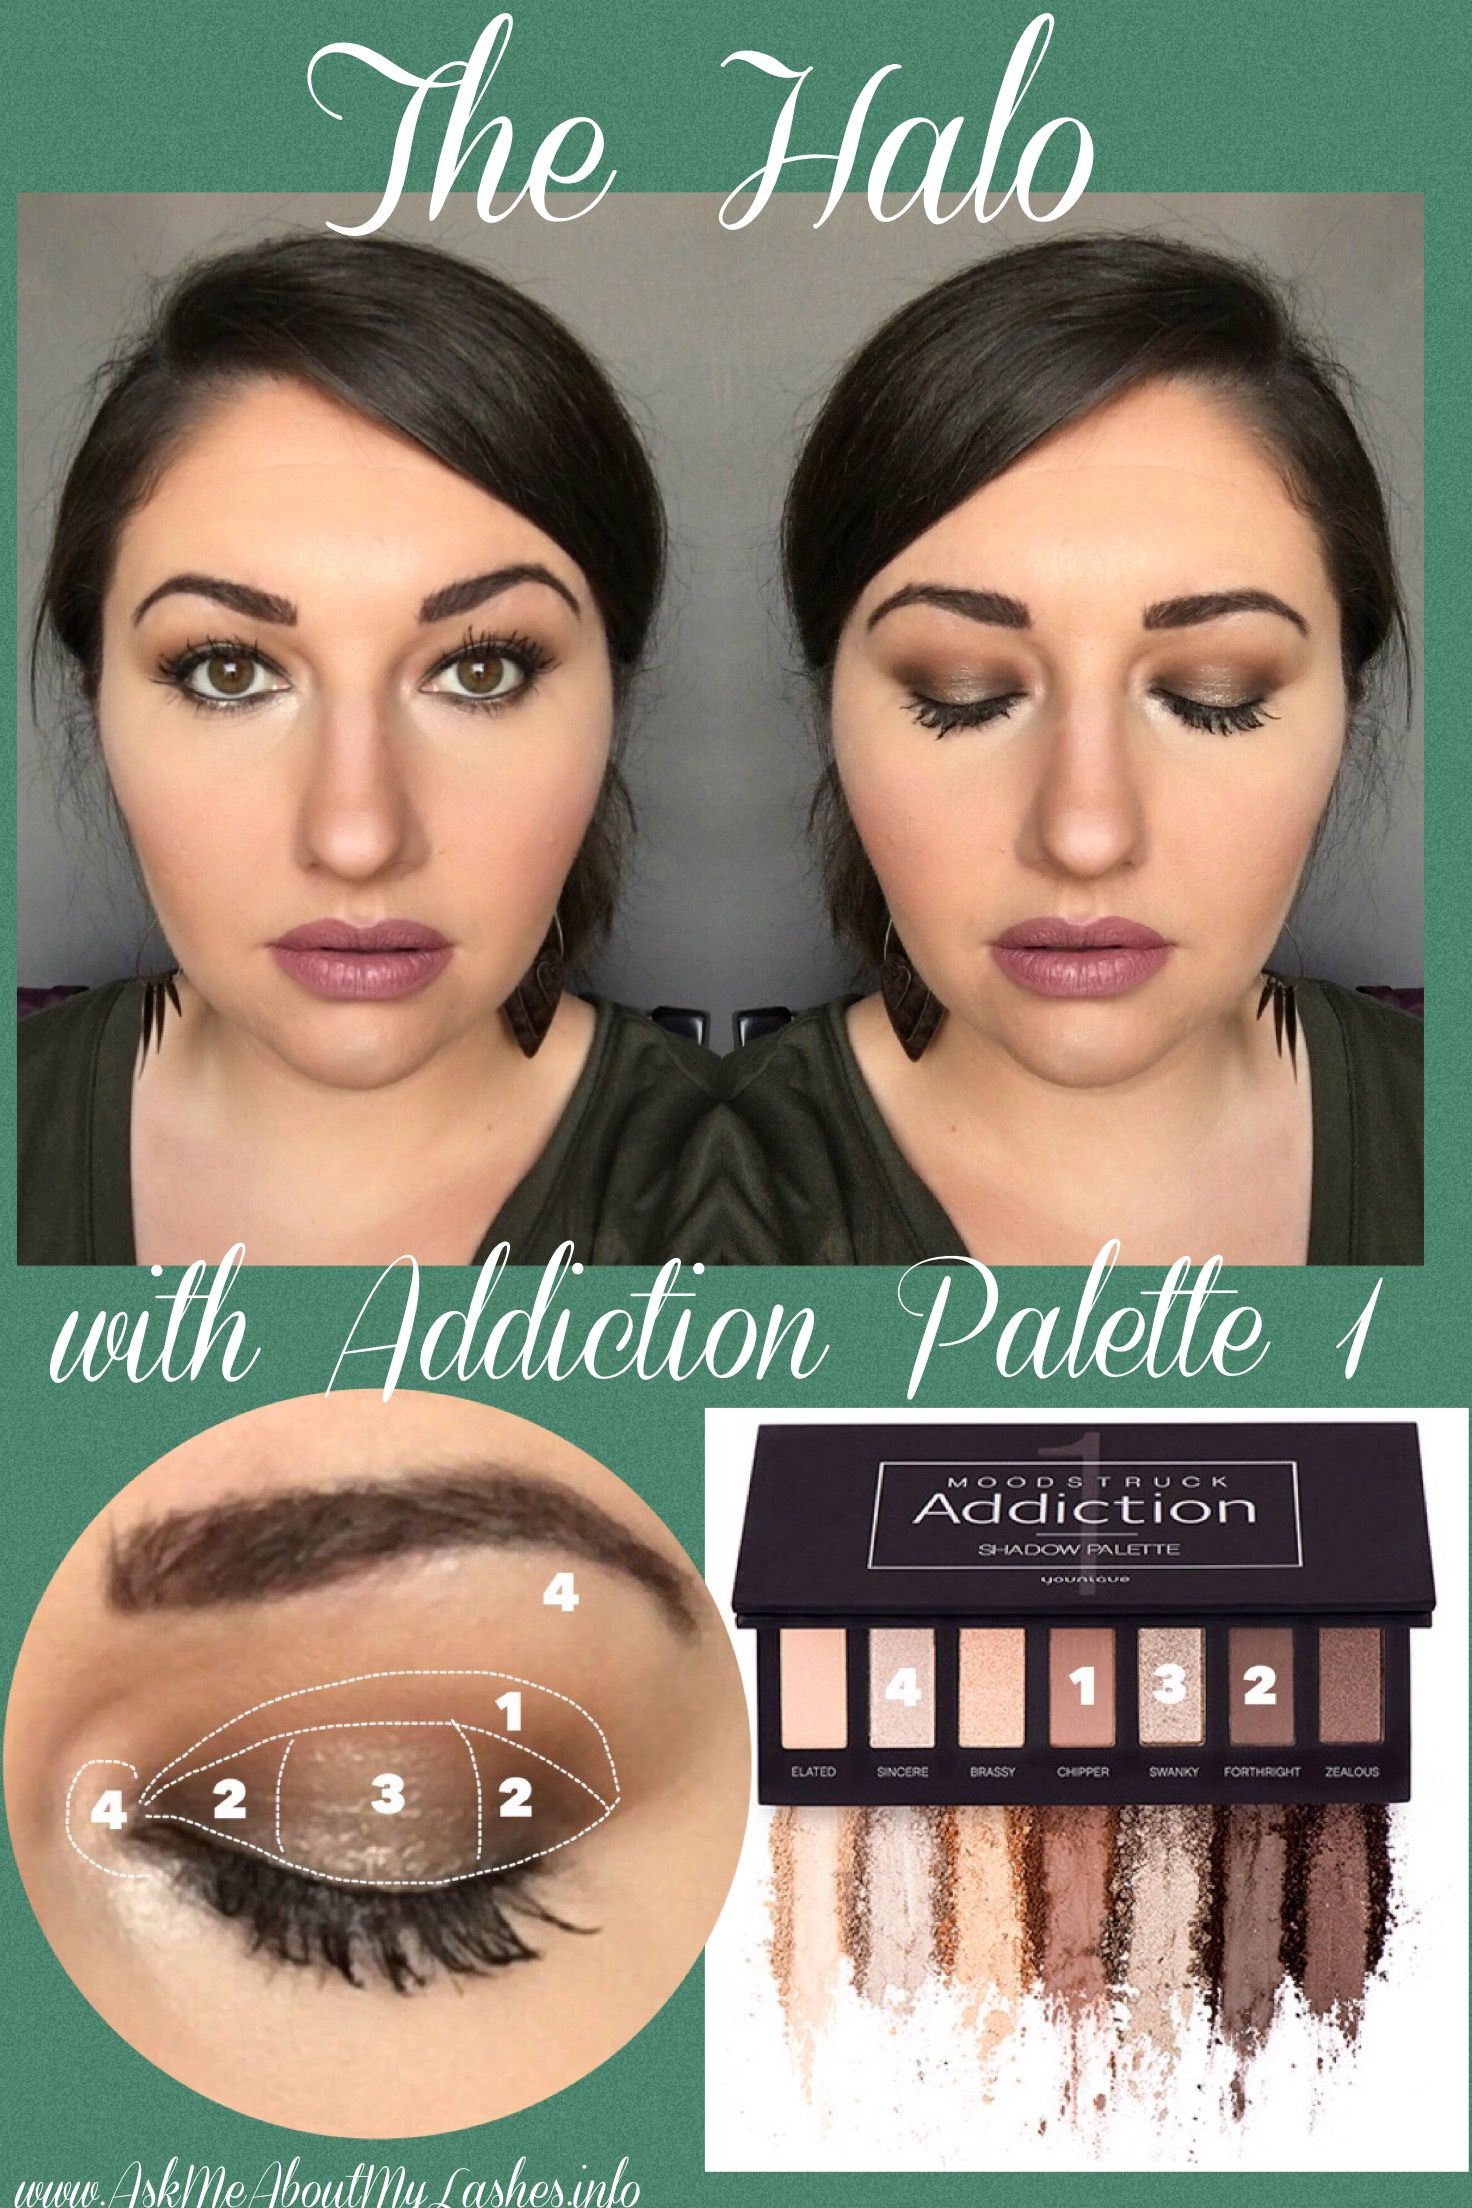 Halo Look With Addiction Palette 1 Color By Numbers For Easy